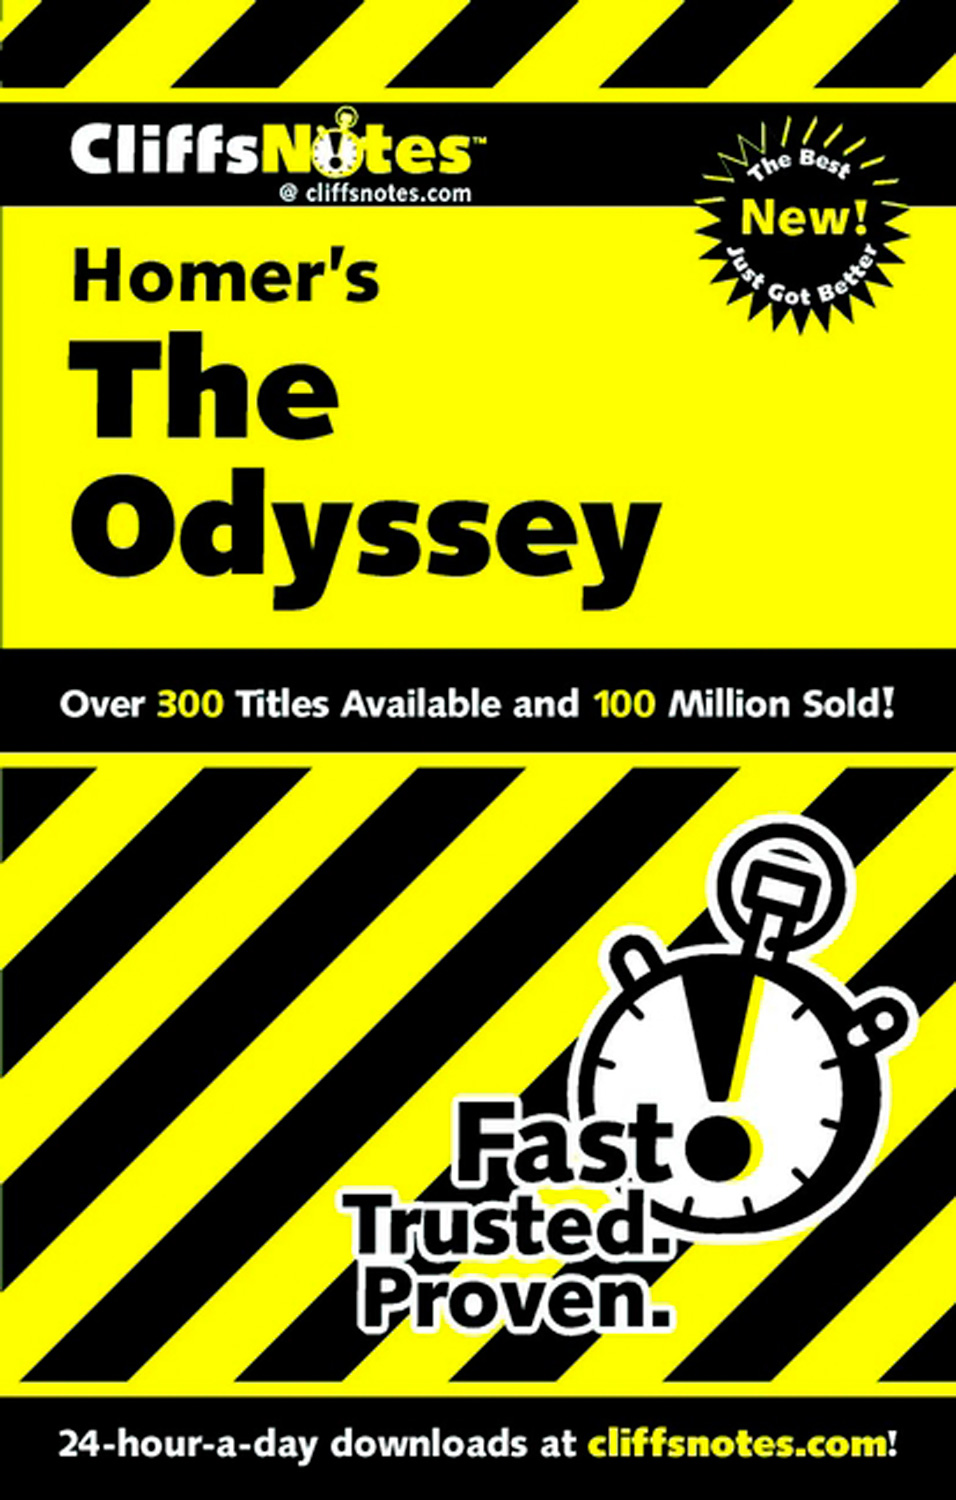 CliffsNotes on Homer's The Odyssey-9780764585999